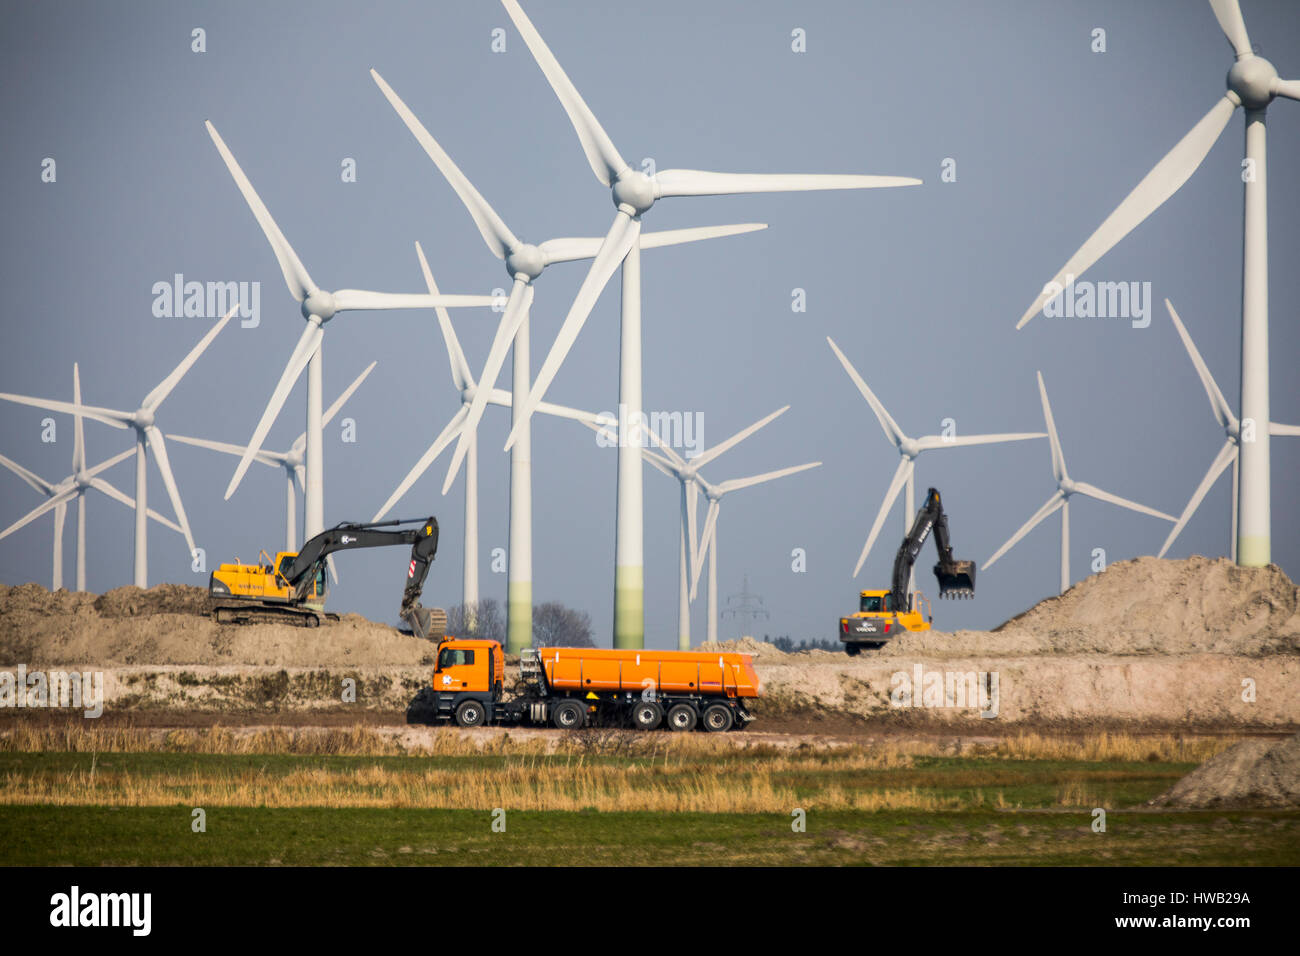 Huge wind energy power plant in northern Germany, east Frisia, North Sea coast, construction, Stock Photo